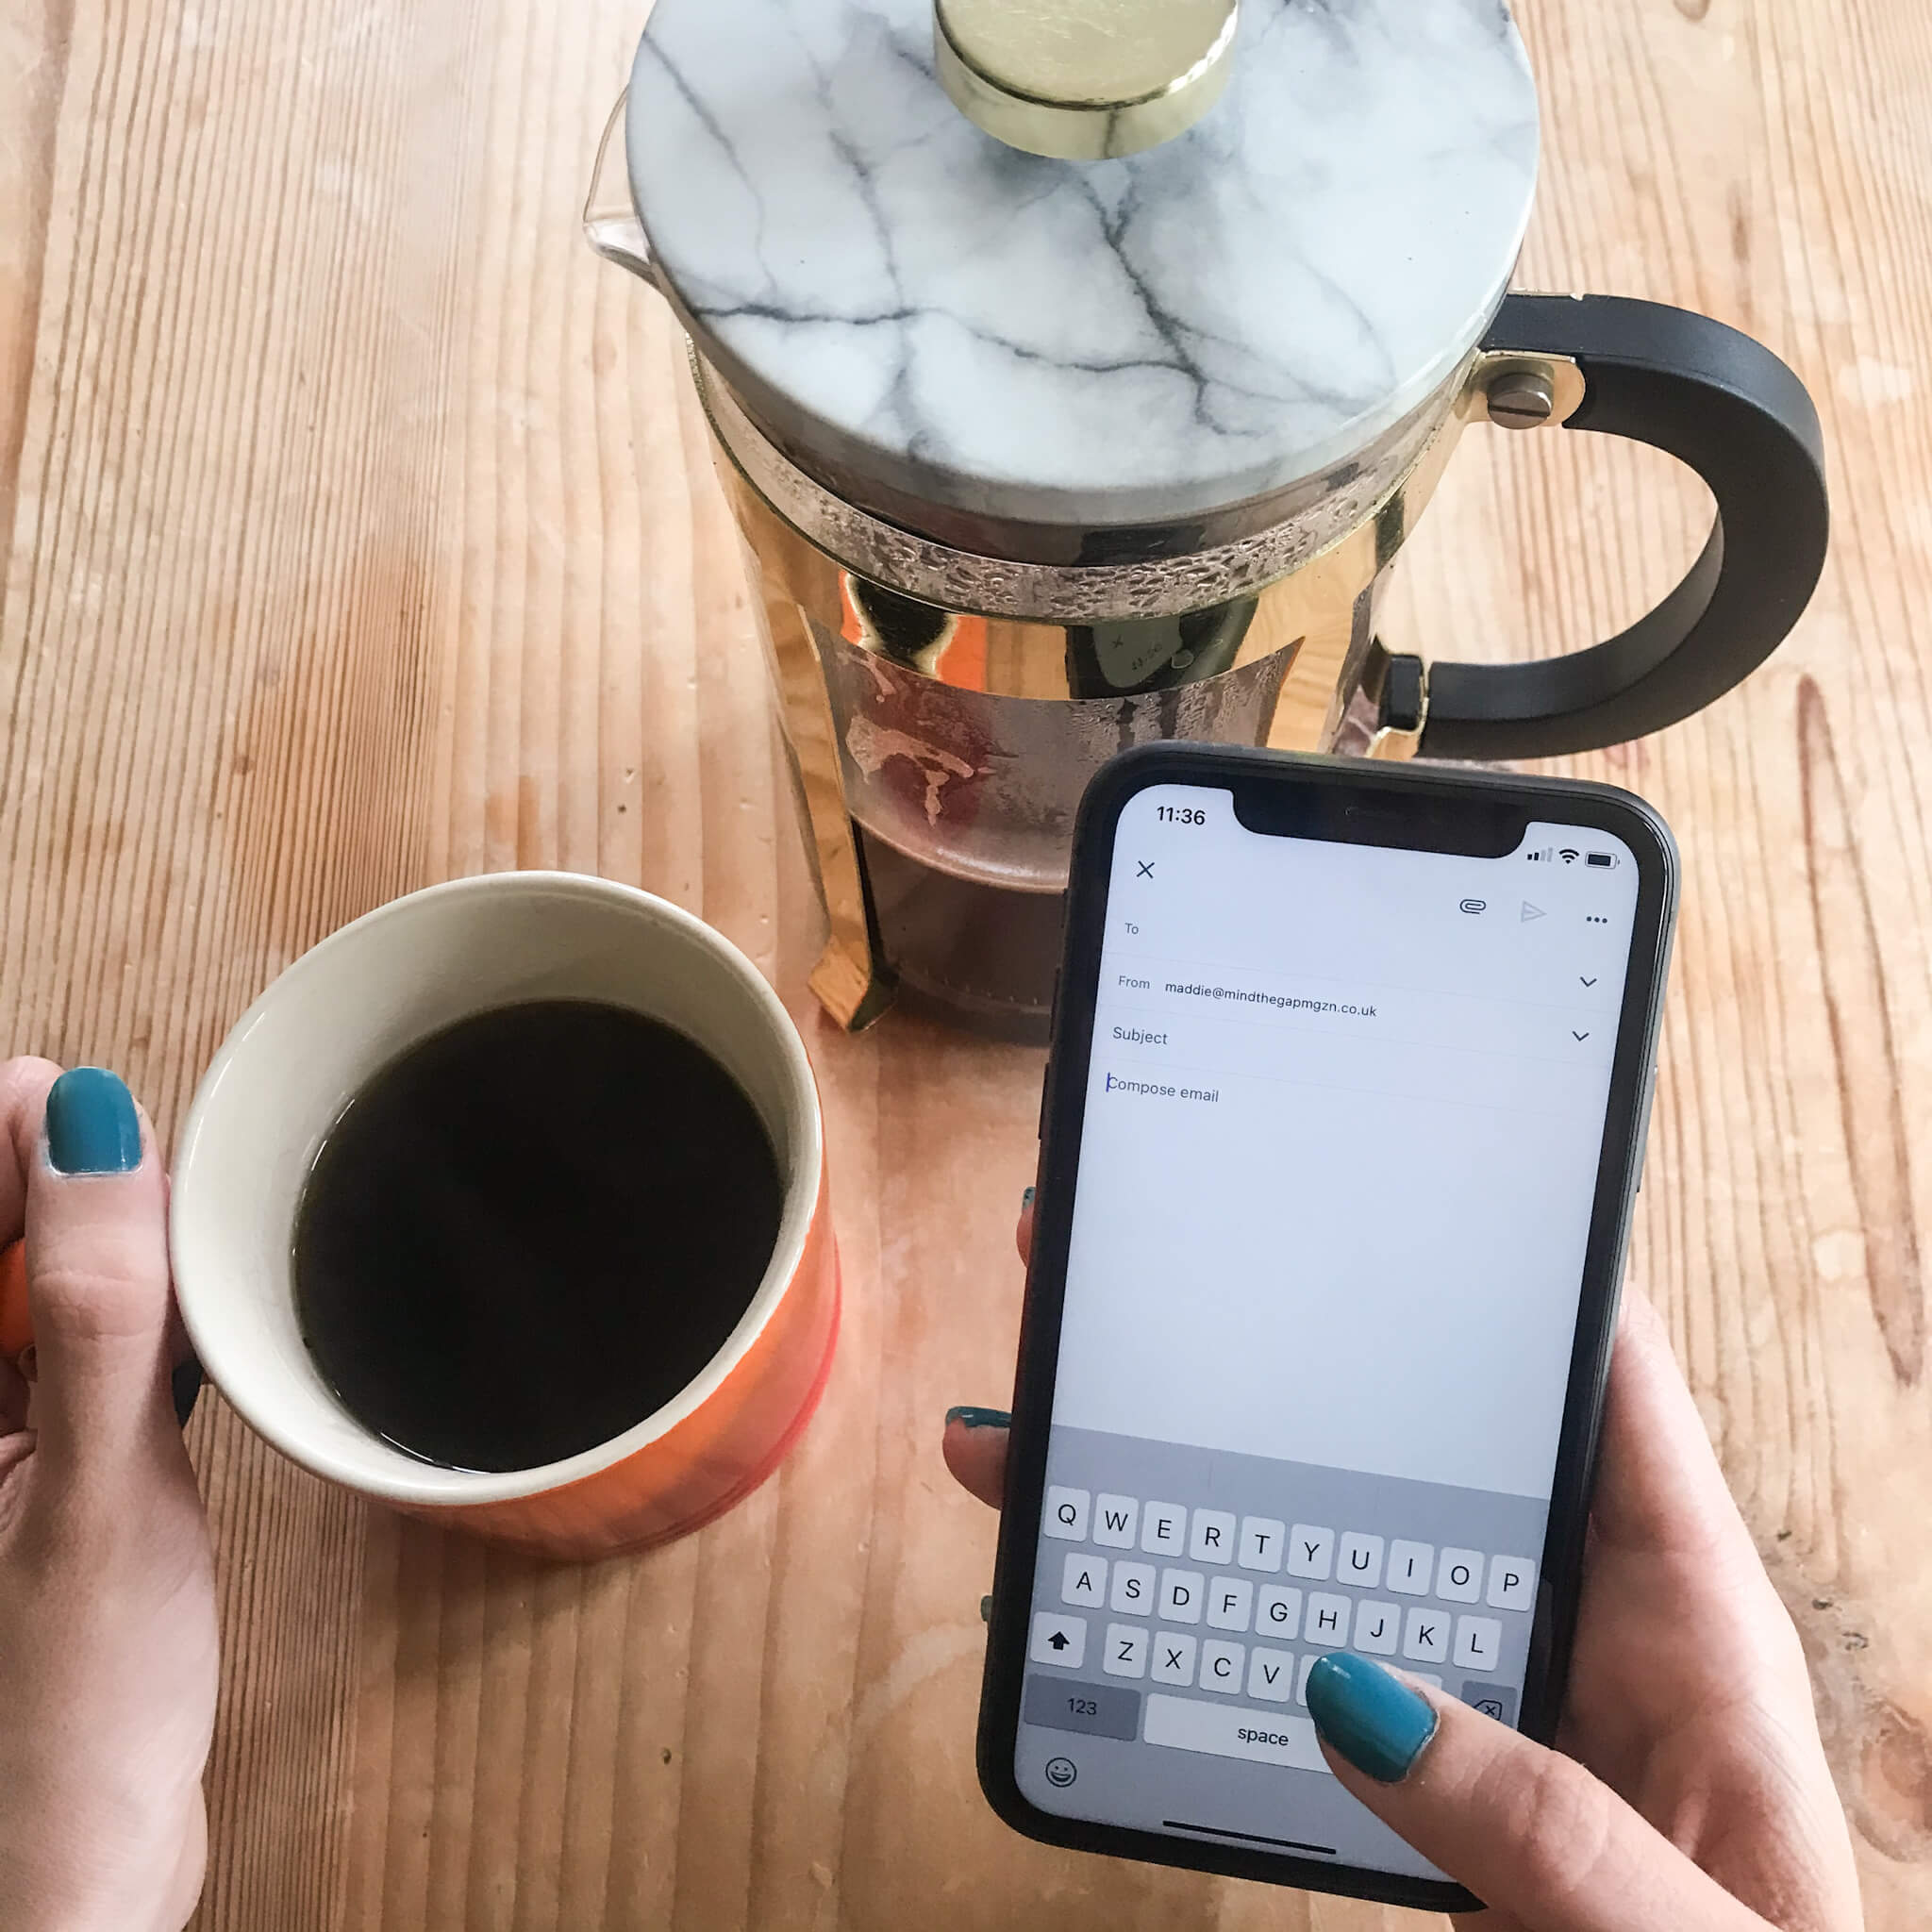 How to email at work | image showing coffee and holding a phone with an email open.